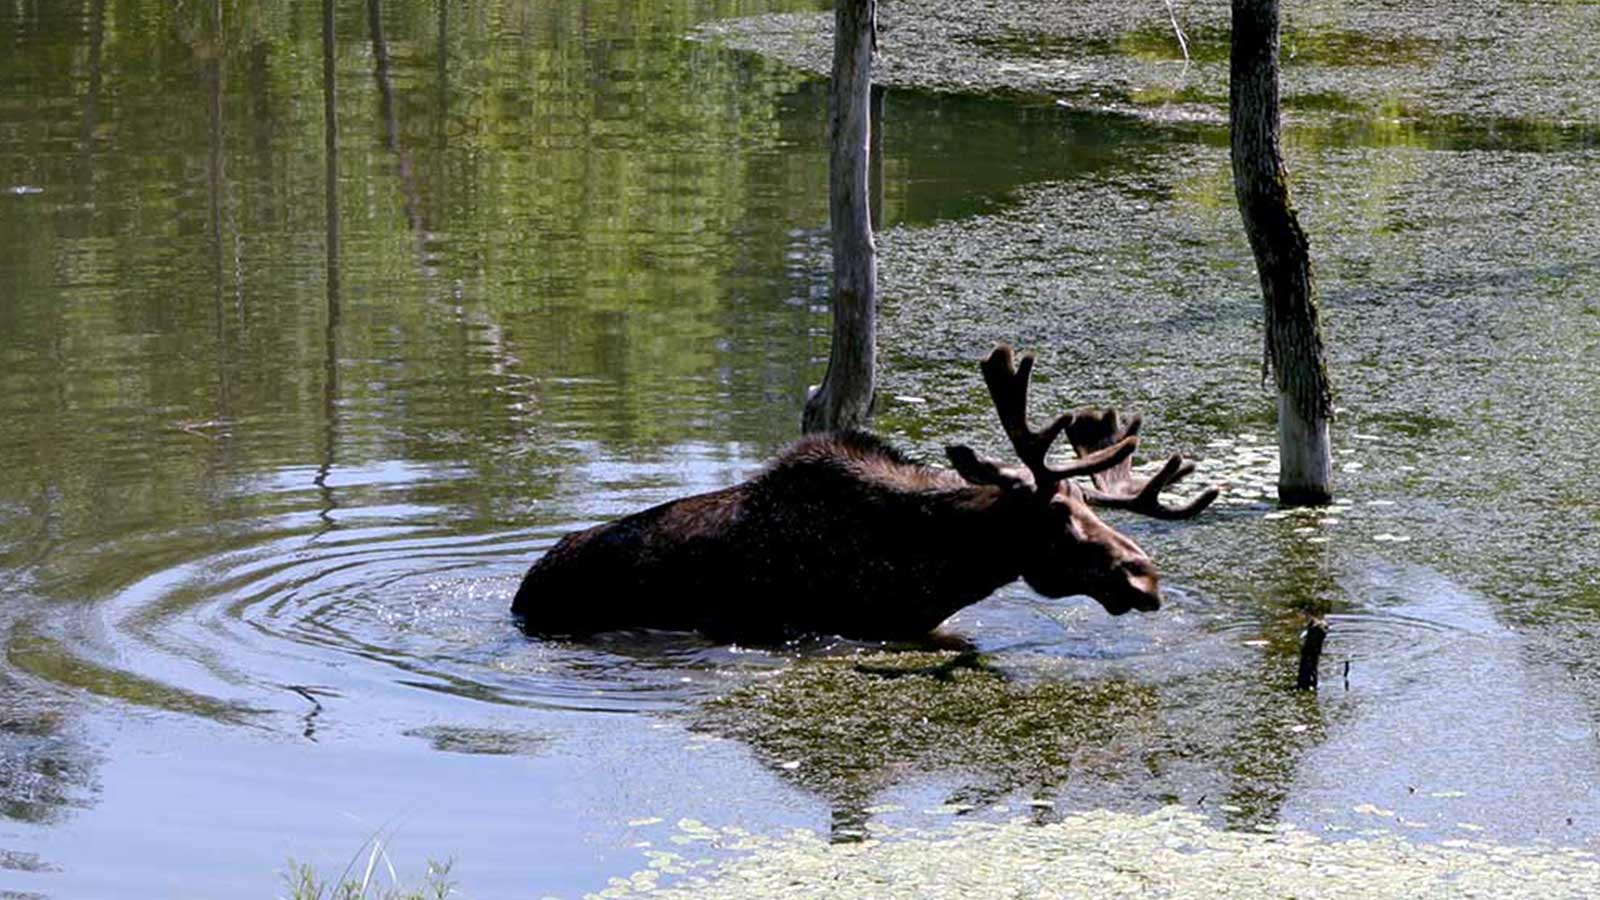 Moose wading through water in canada